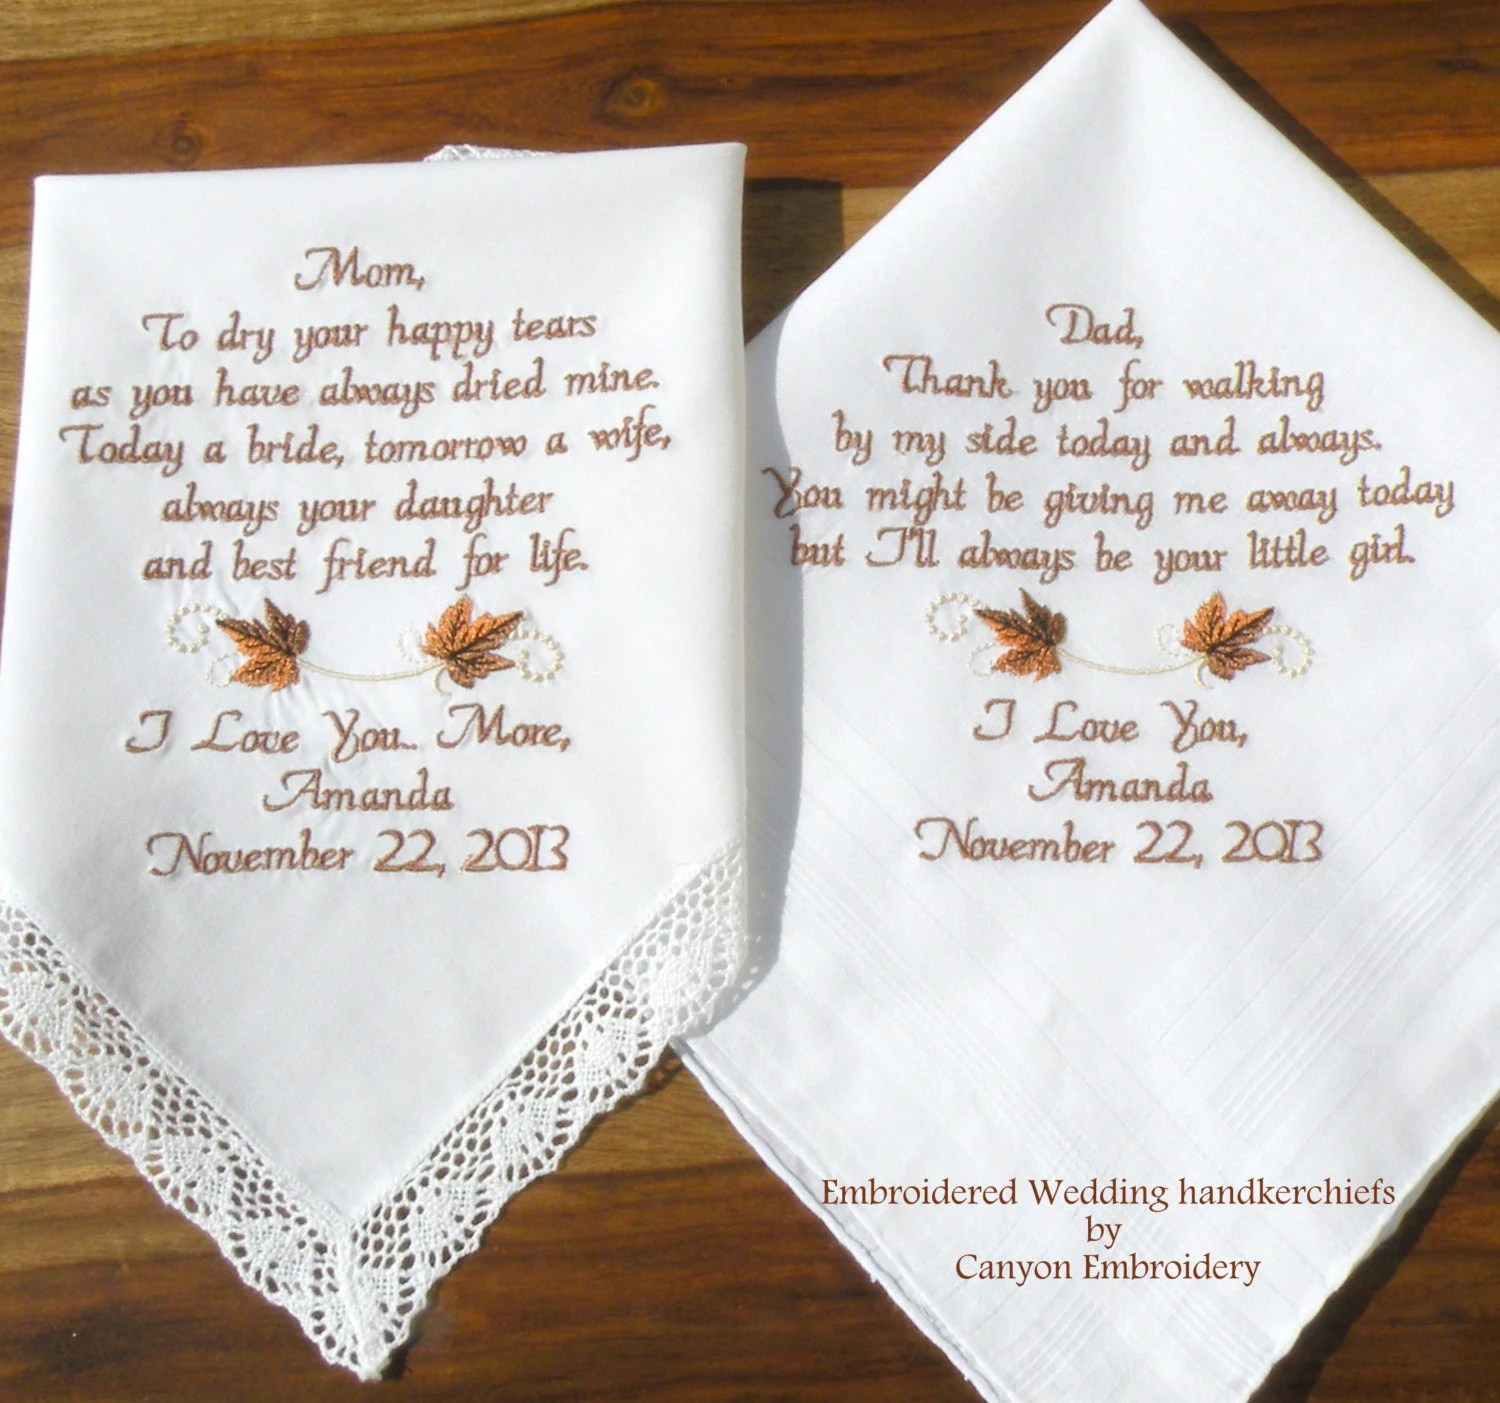 embroidered wedding hankerchiefs fall